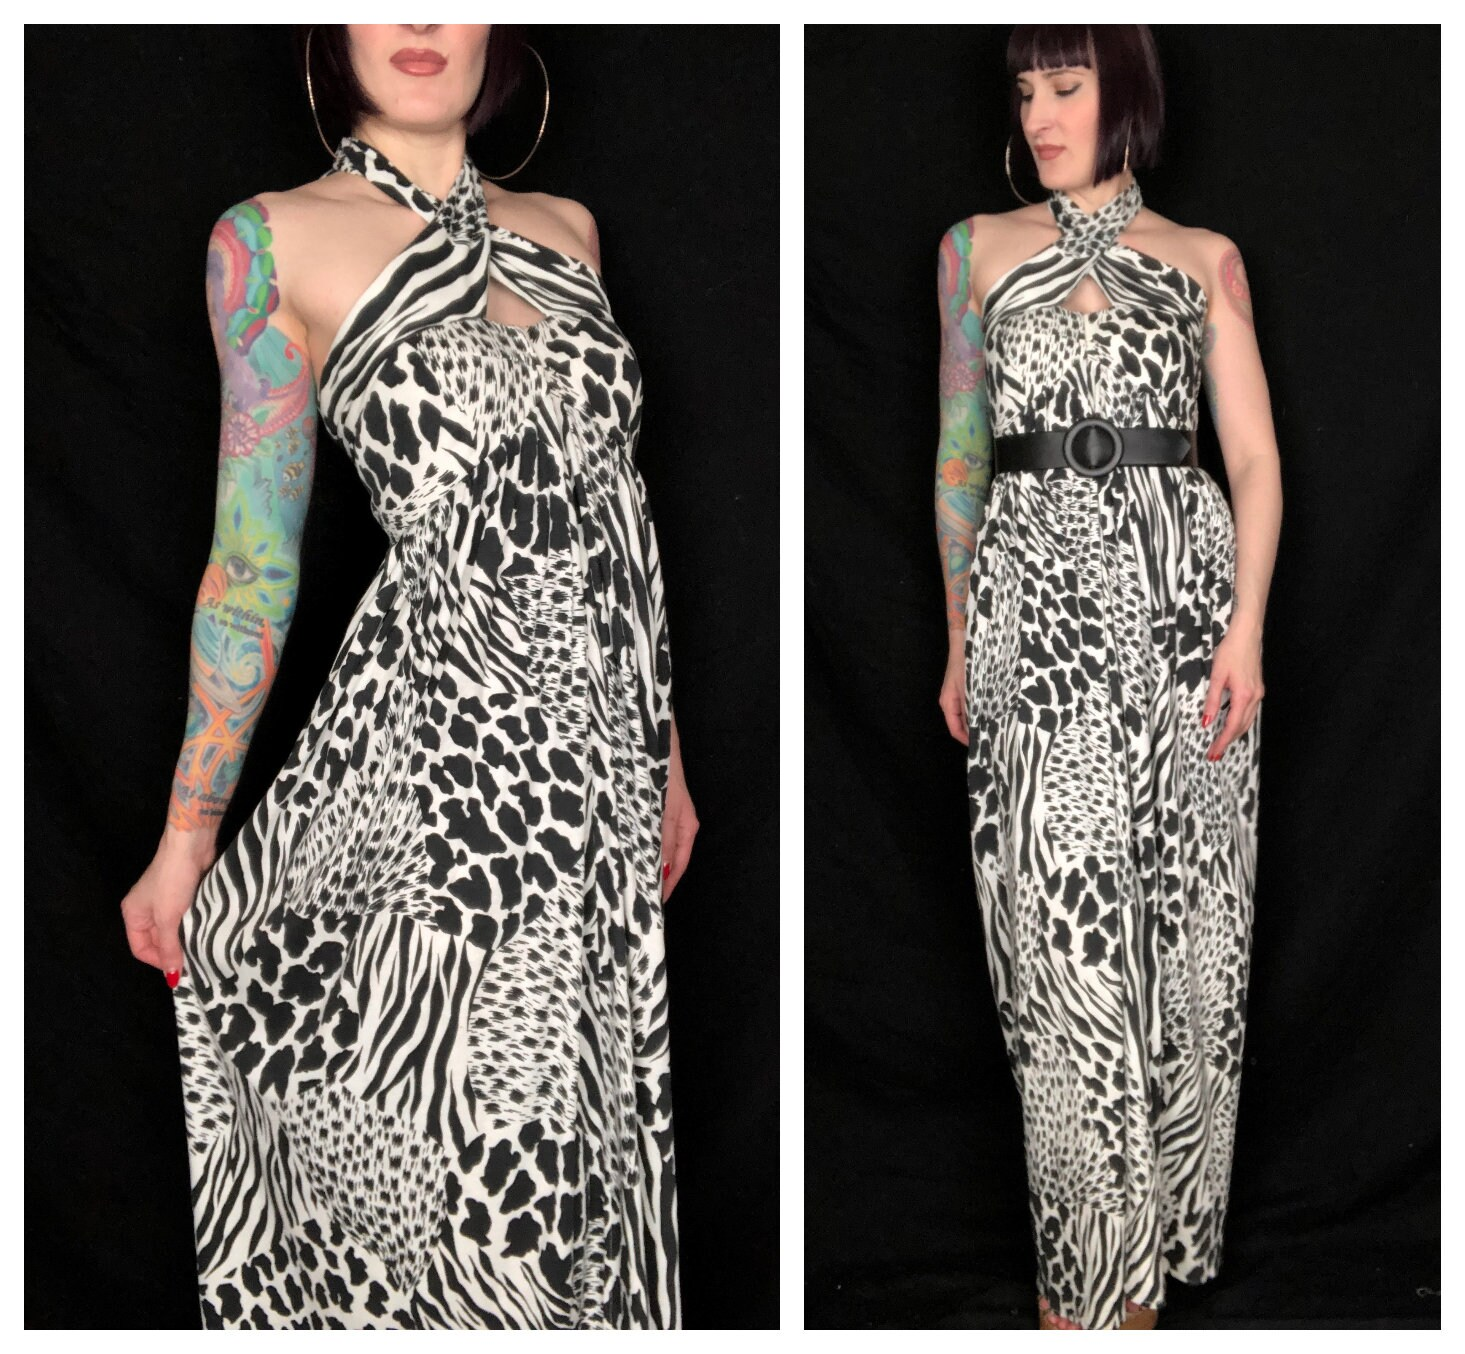 80s Dresses | Casual to Party Dresses Vintage 1980s Black  White Abstract Animal Print Criss Cross Halter Top Maxi Dress By Victor Costa At Home - Size Small Xs $37.00 AT vintagedancer.com